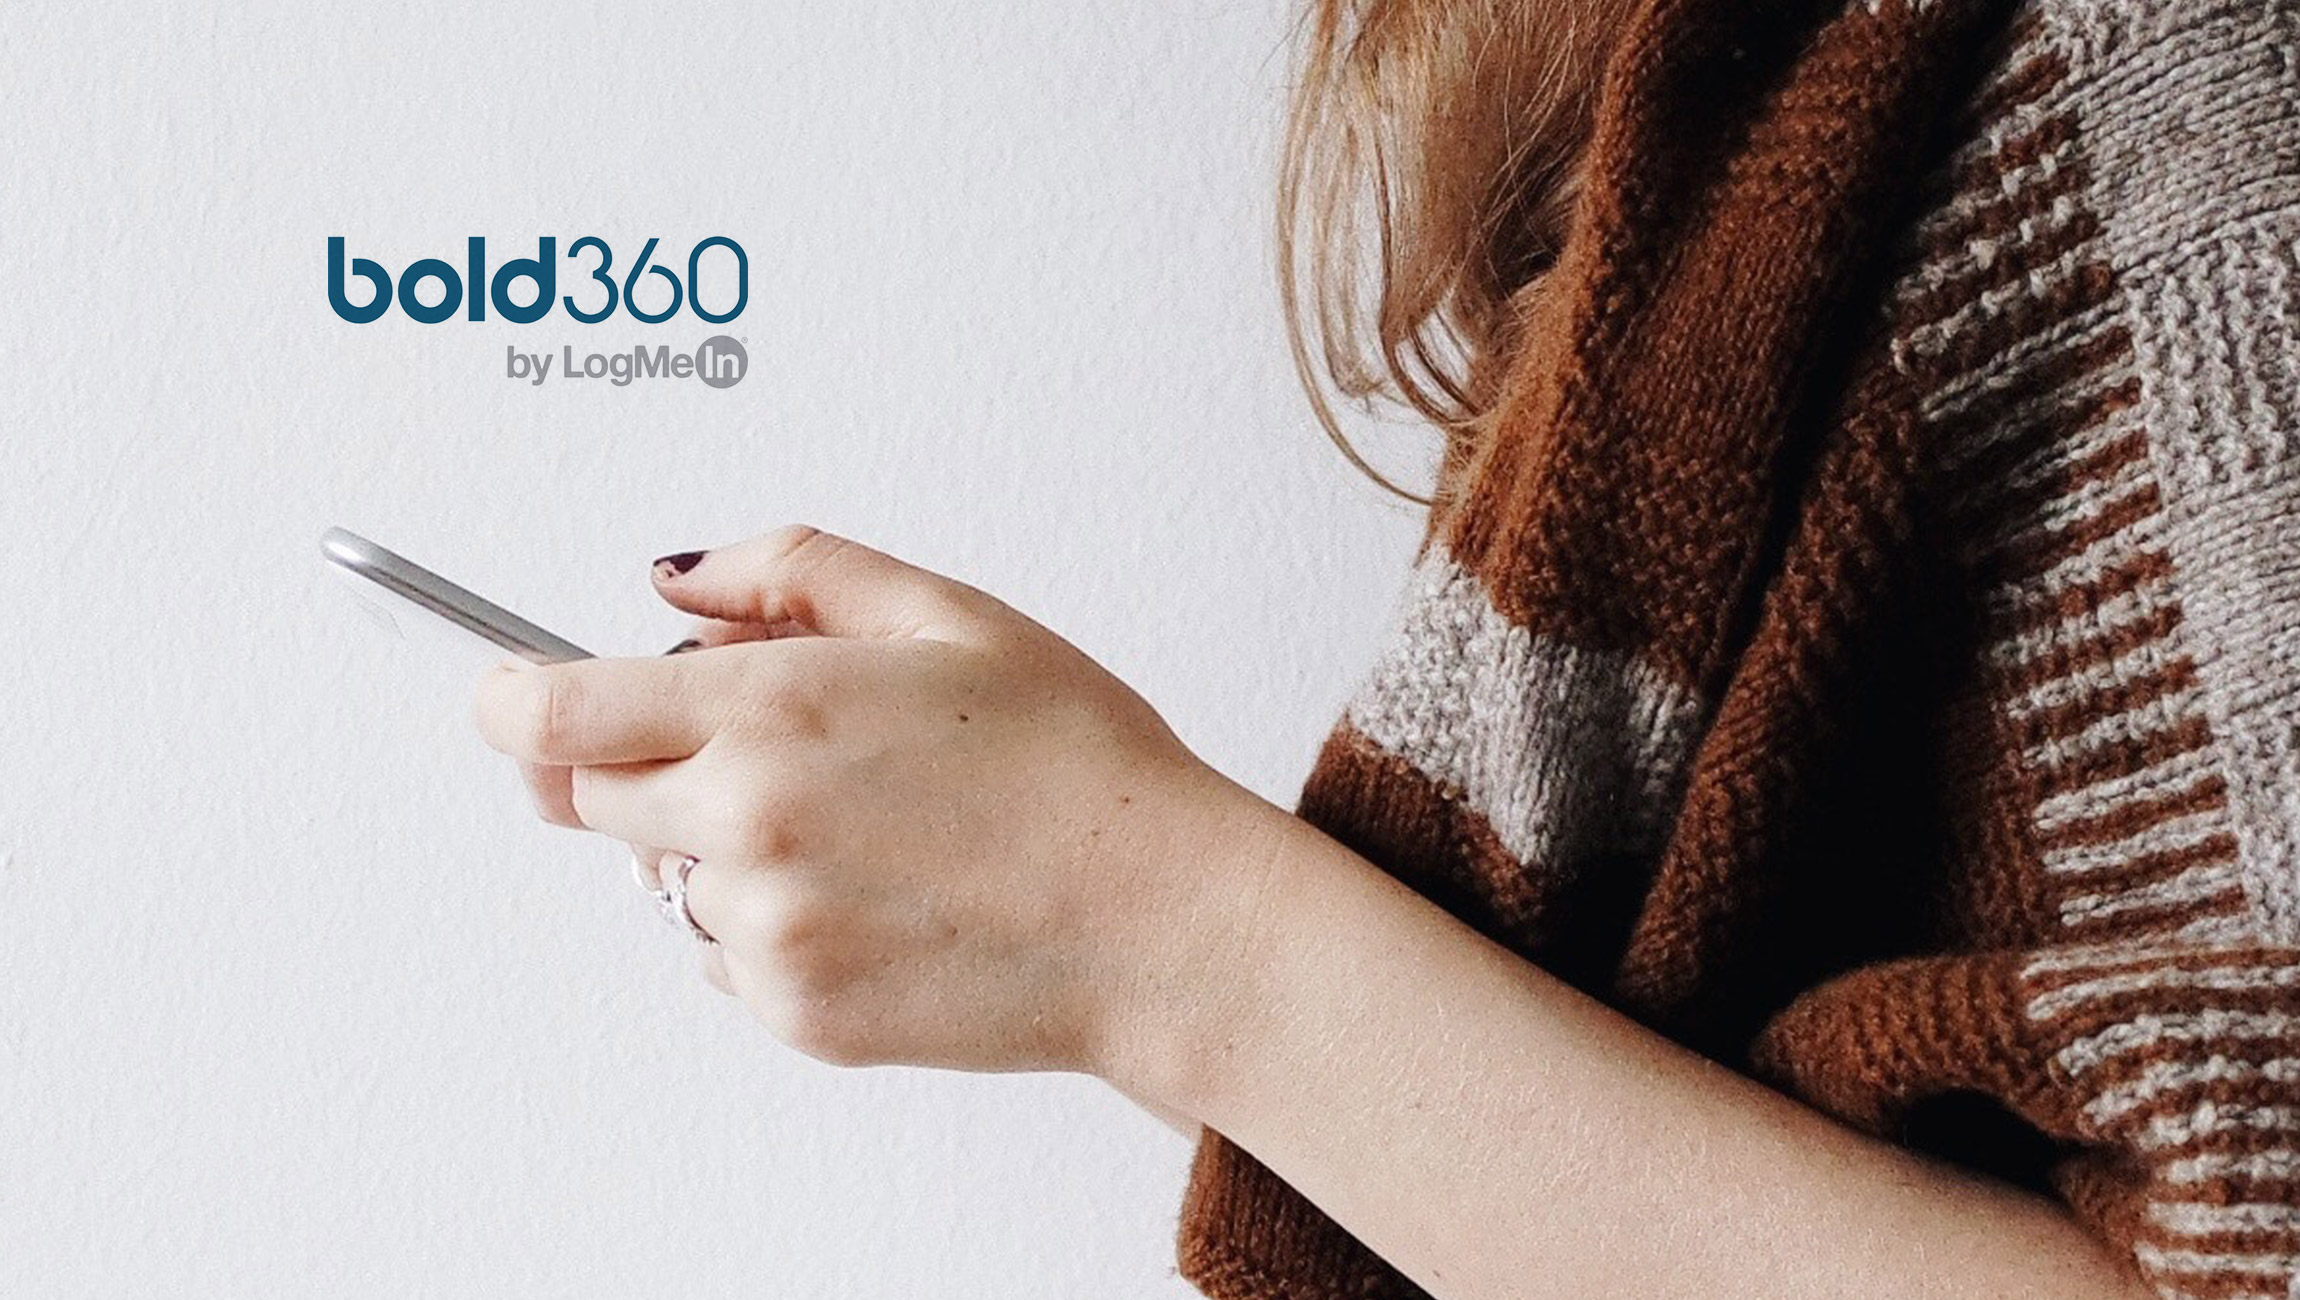 LogMeIn Forges Path to Eliminate CX Barriers with Bold360 Real-Time Agent Collaboration